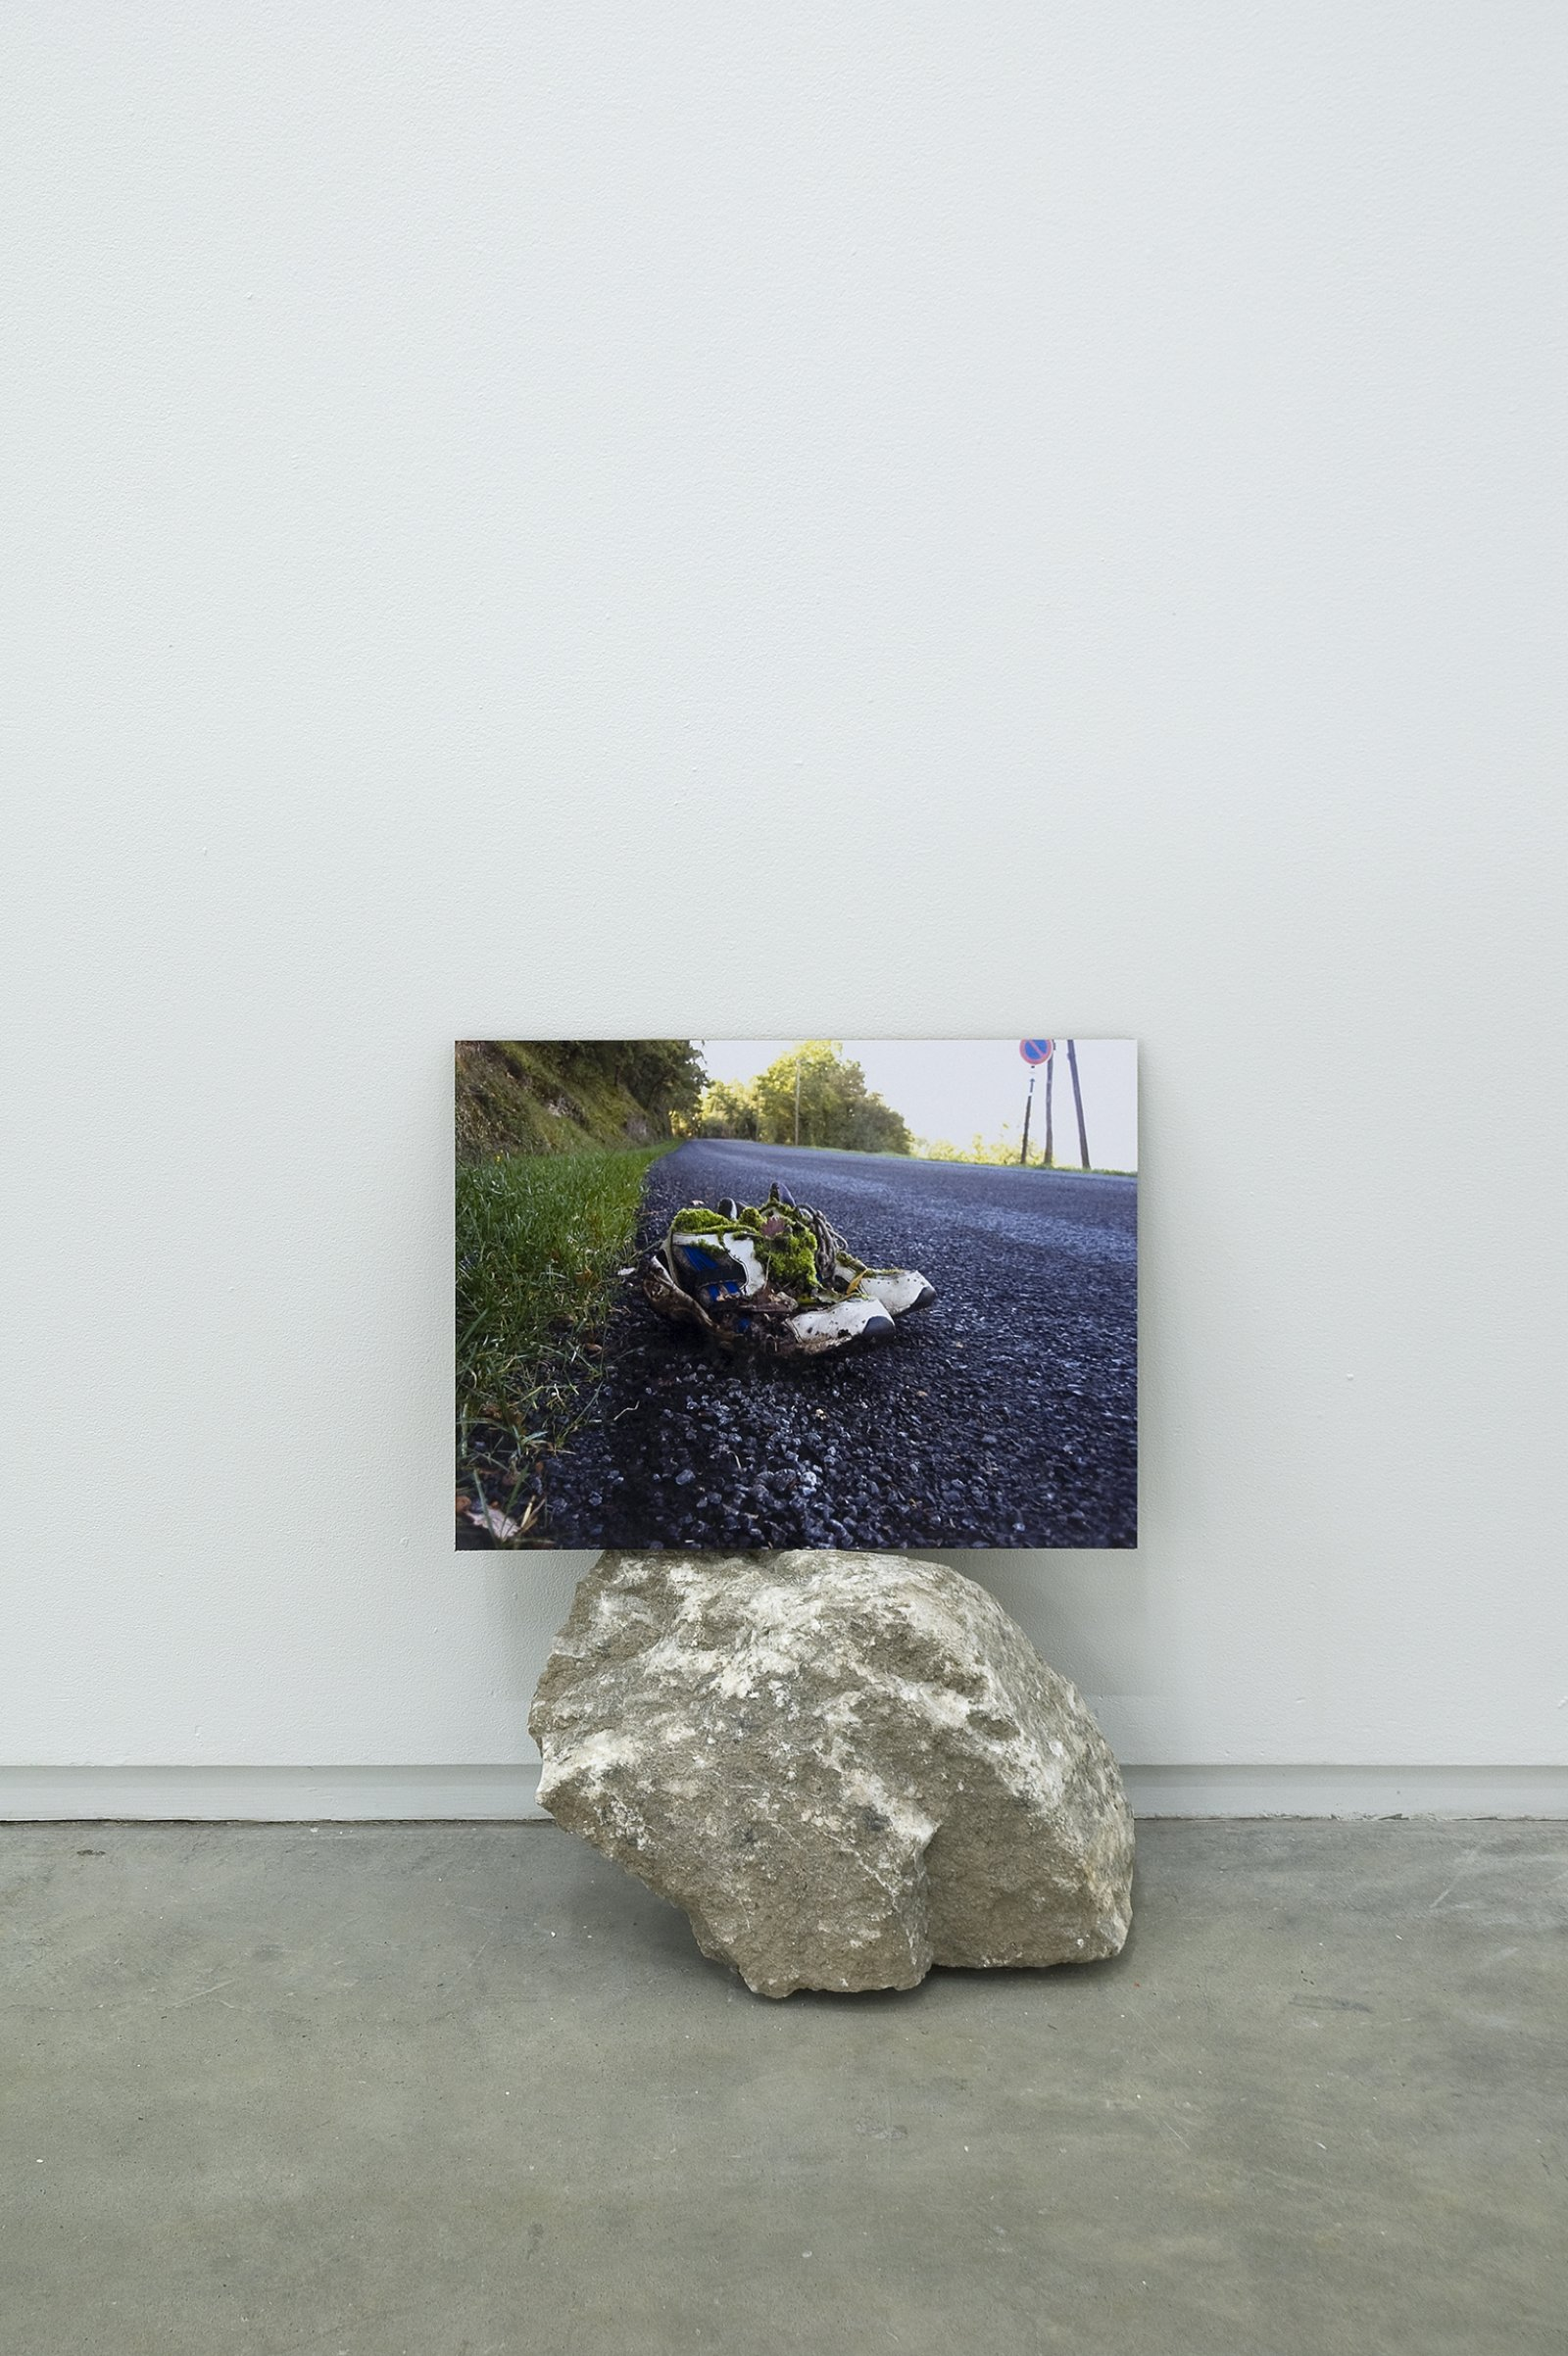 Gareth Moore, Tarring Wheels from Uncertain Pilgrimage, 2006-2009, lightjet print, cardboard, rock, 21 x 16 x 8 in. (53 x 41 x 19 cm) by Ashes Withyman